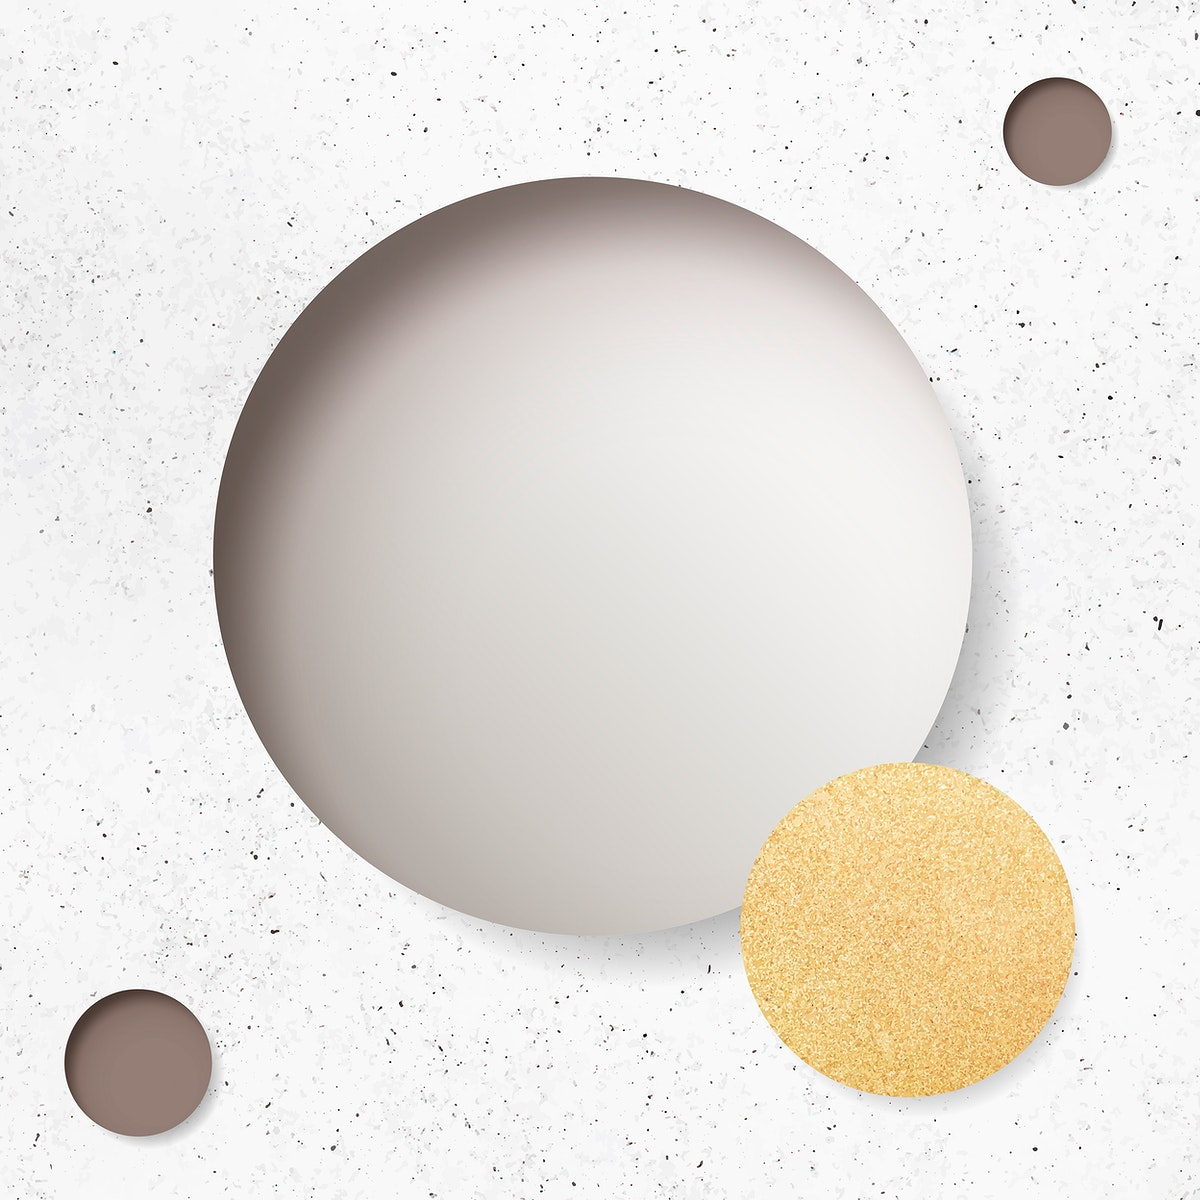 Beige circle on white marble background vector